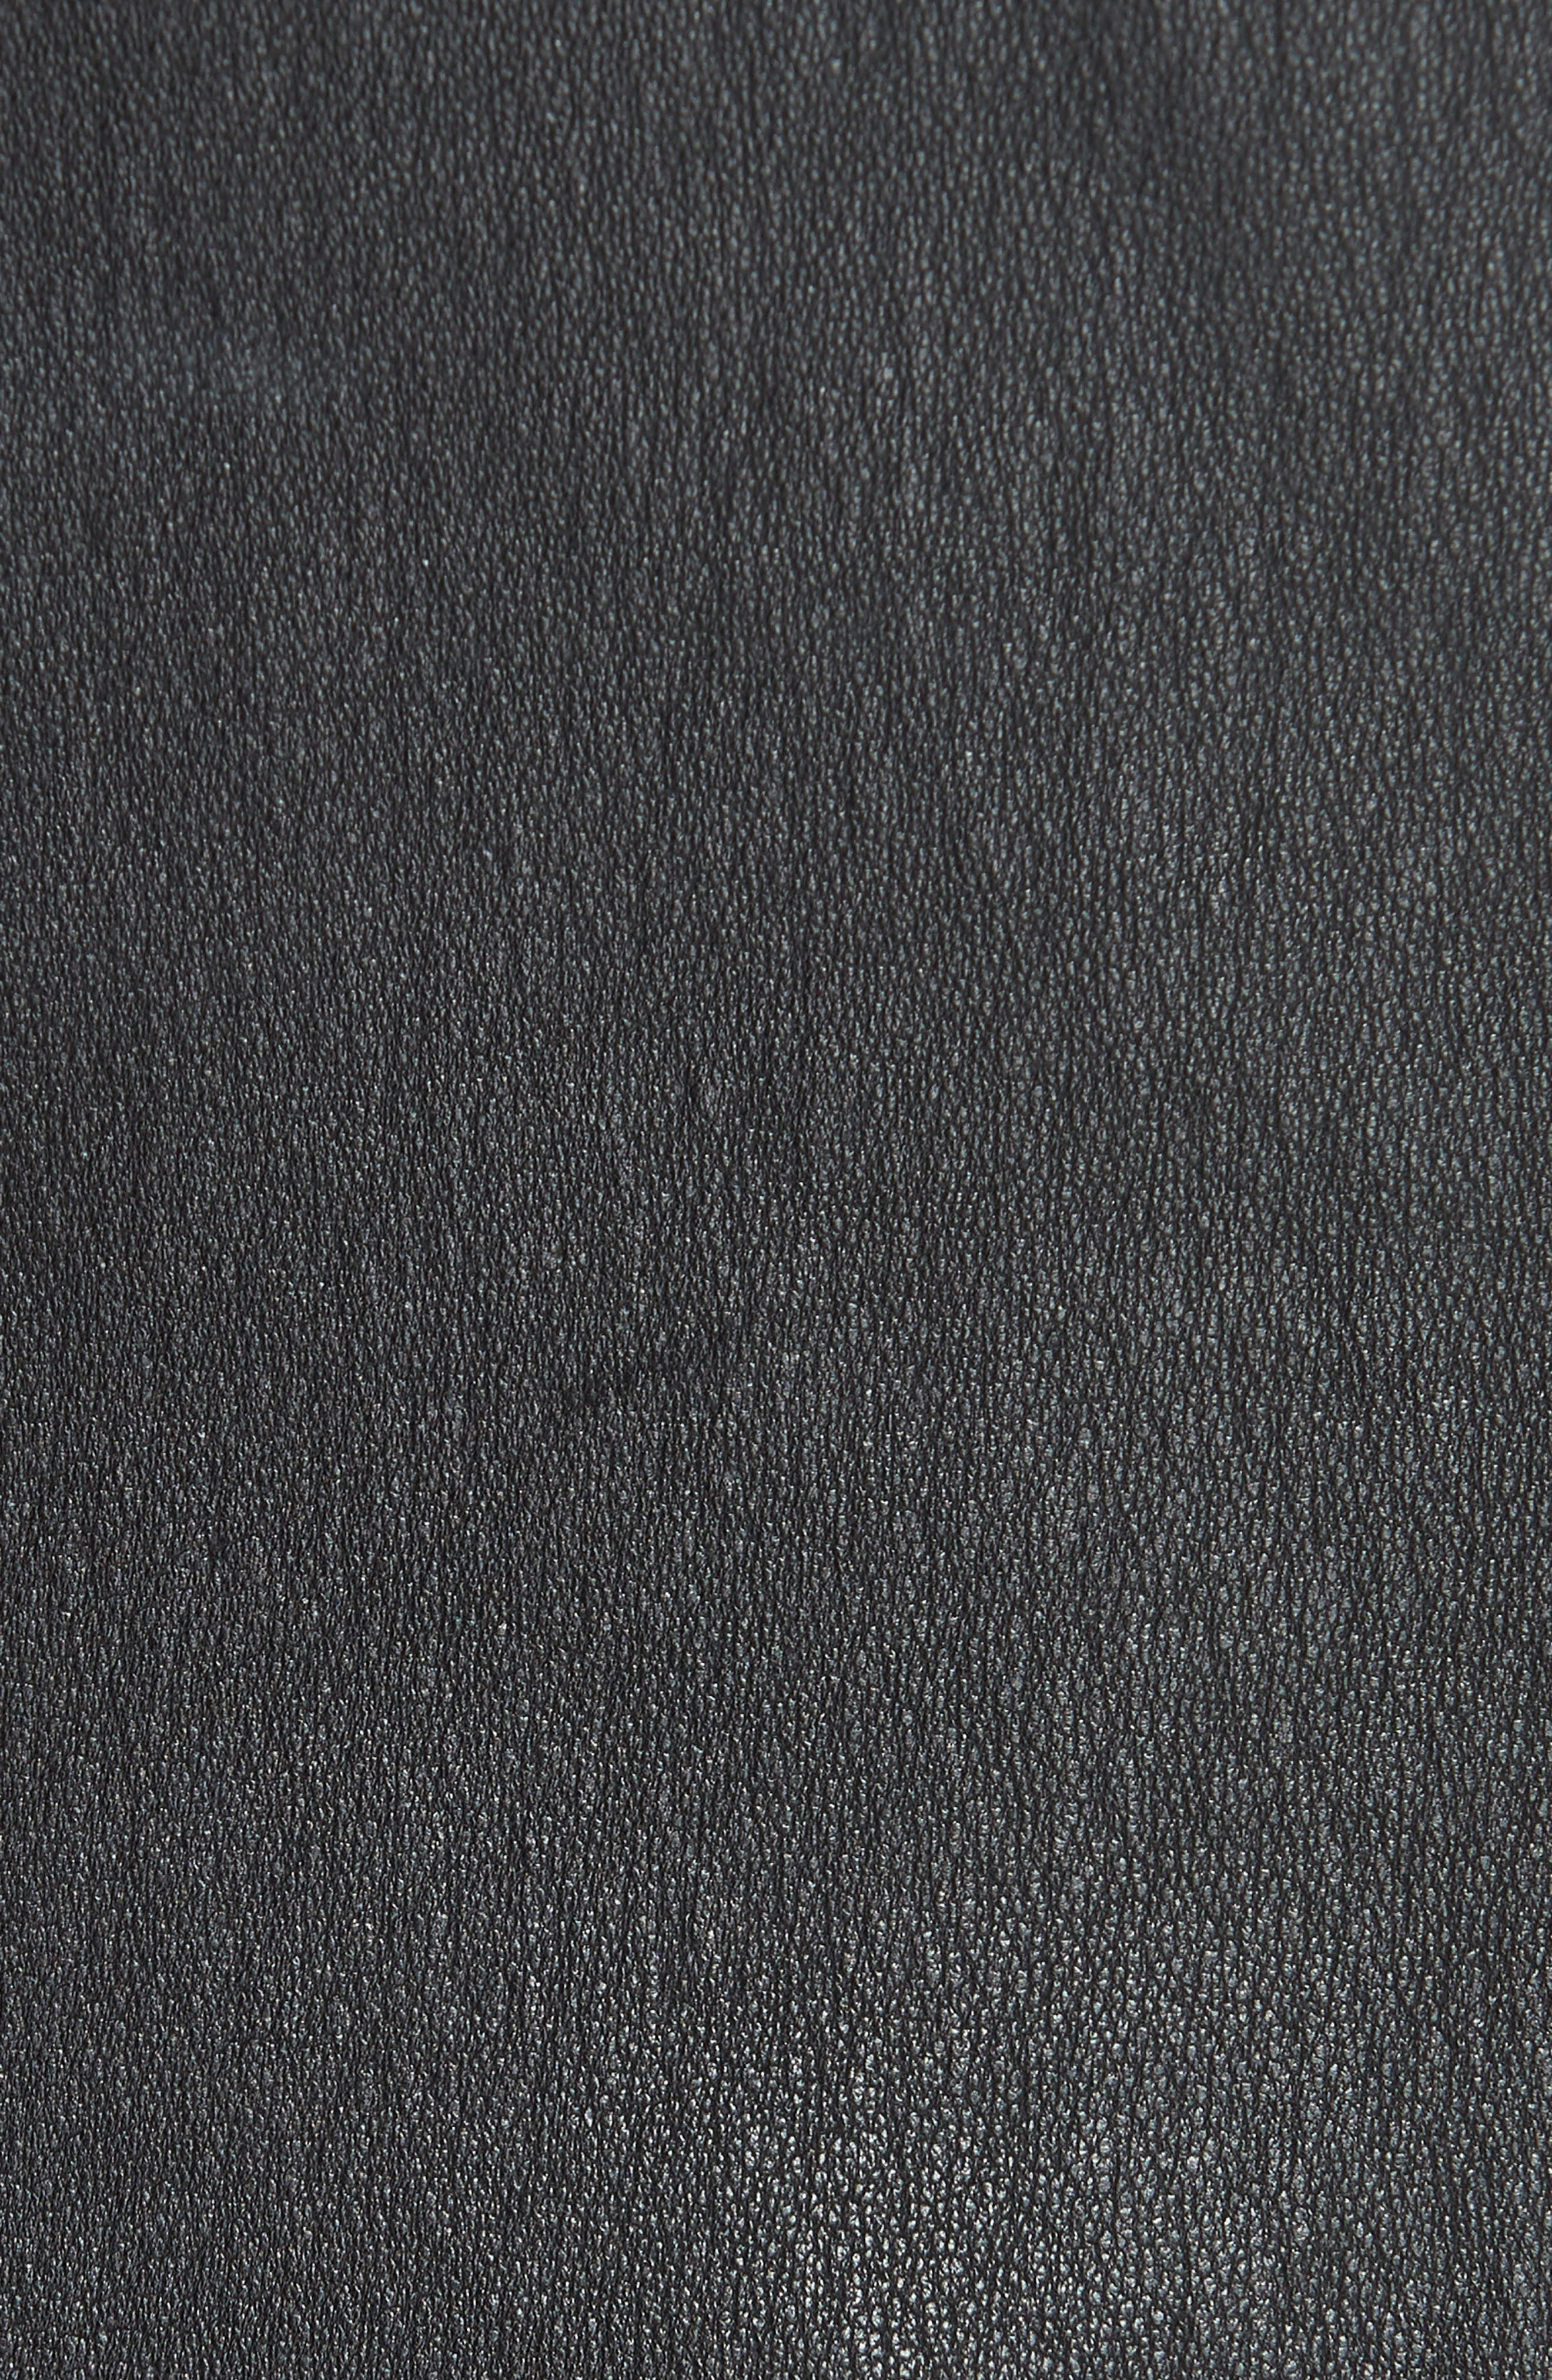 Seamed Leather Shell,                             Alternate thumbnail 5, color,                             001